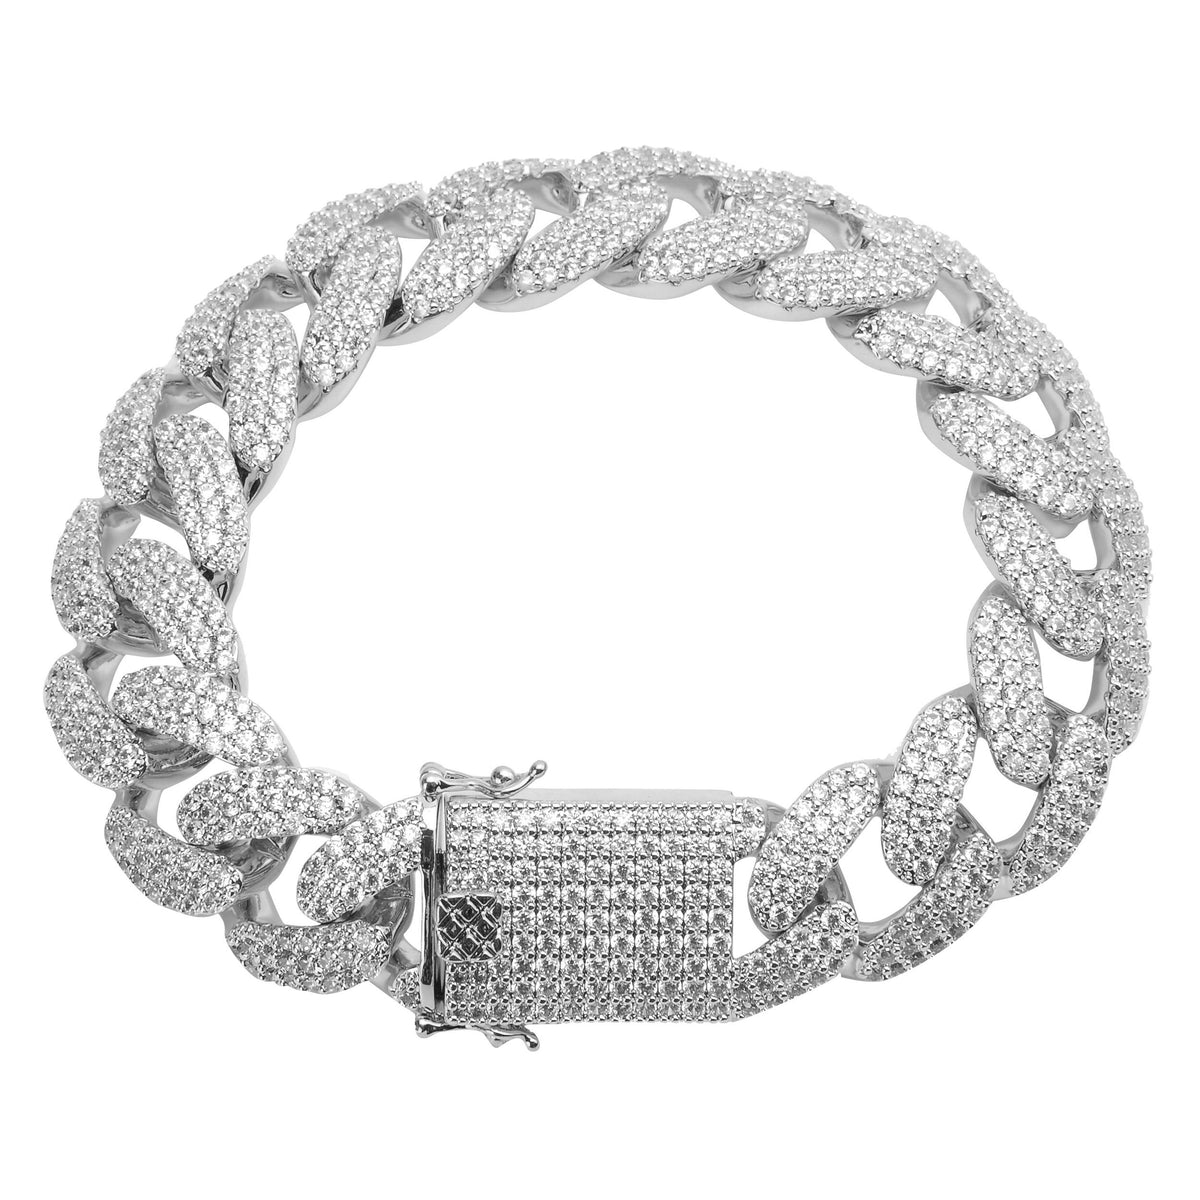 13MM CURVED DIAMOND CUBAN LINK BRACELET